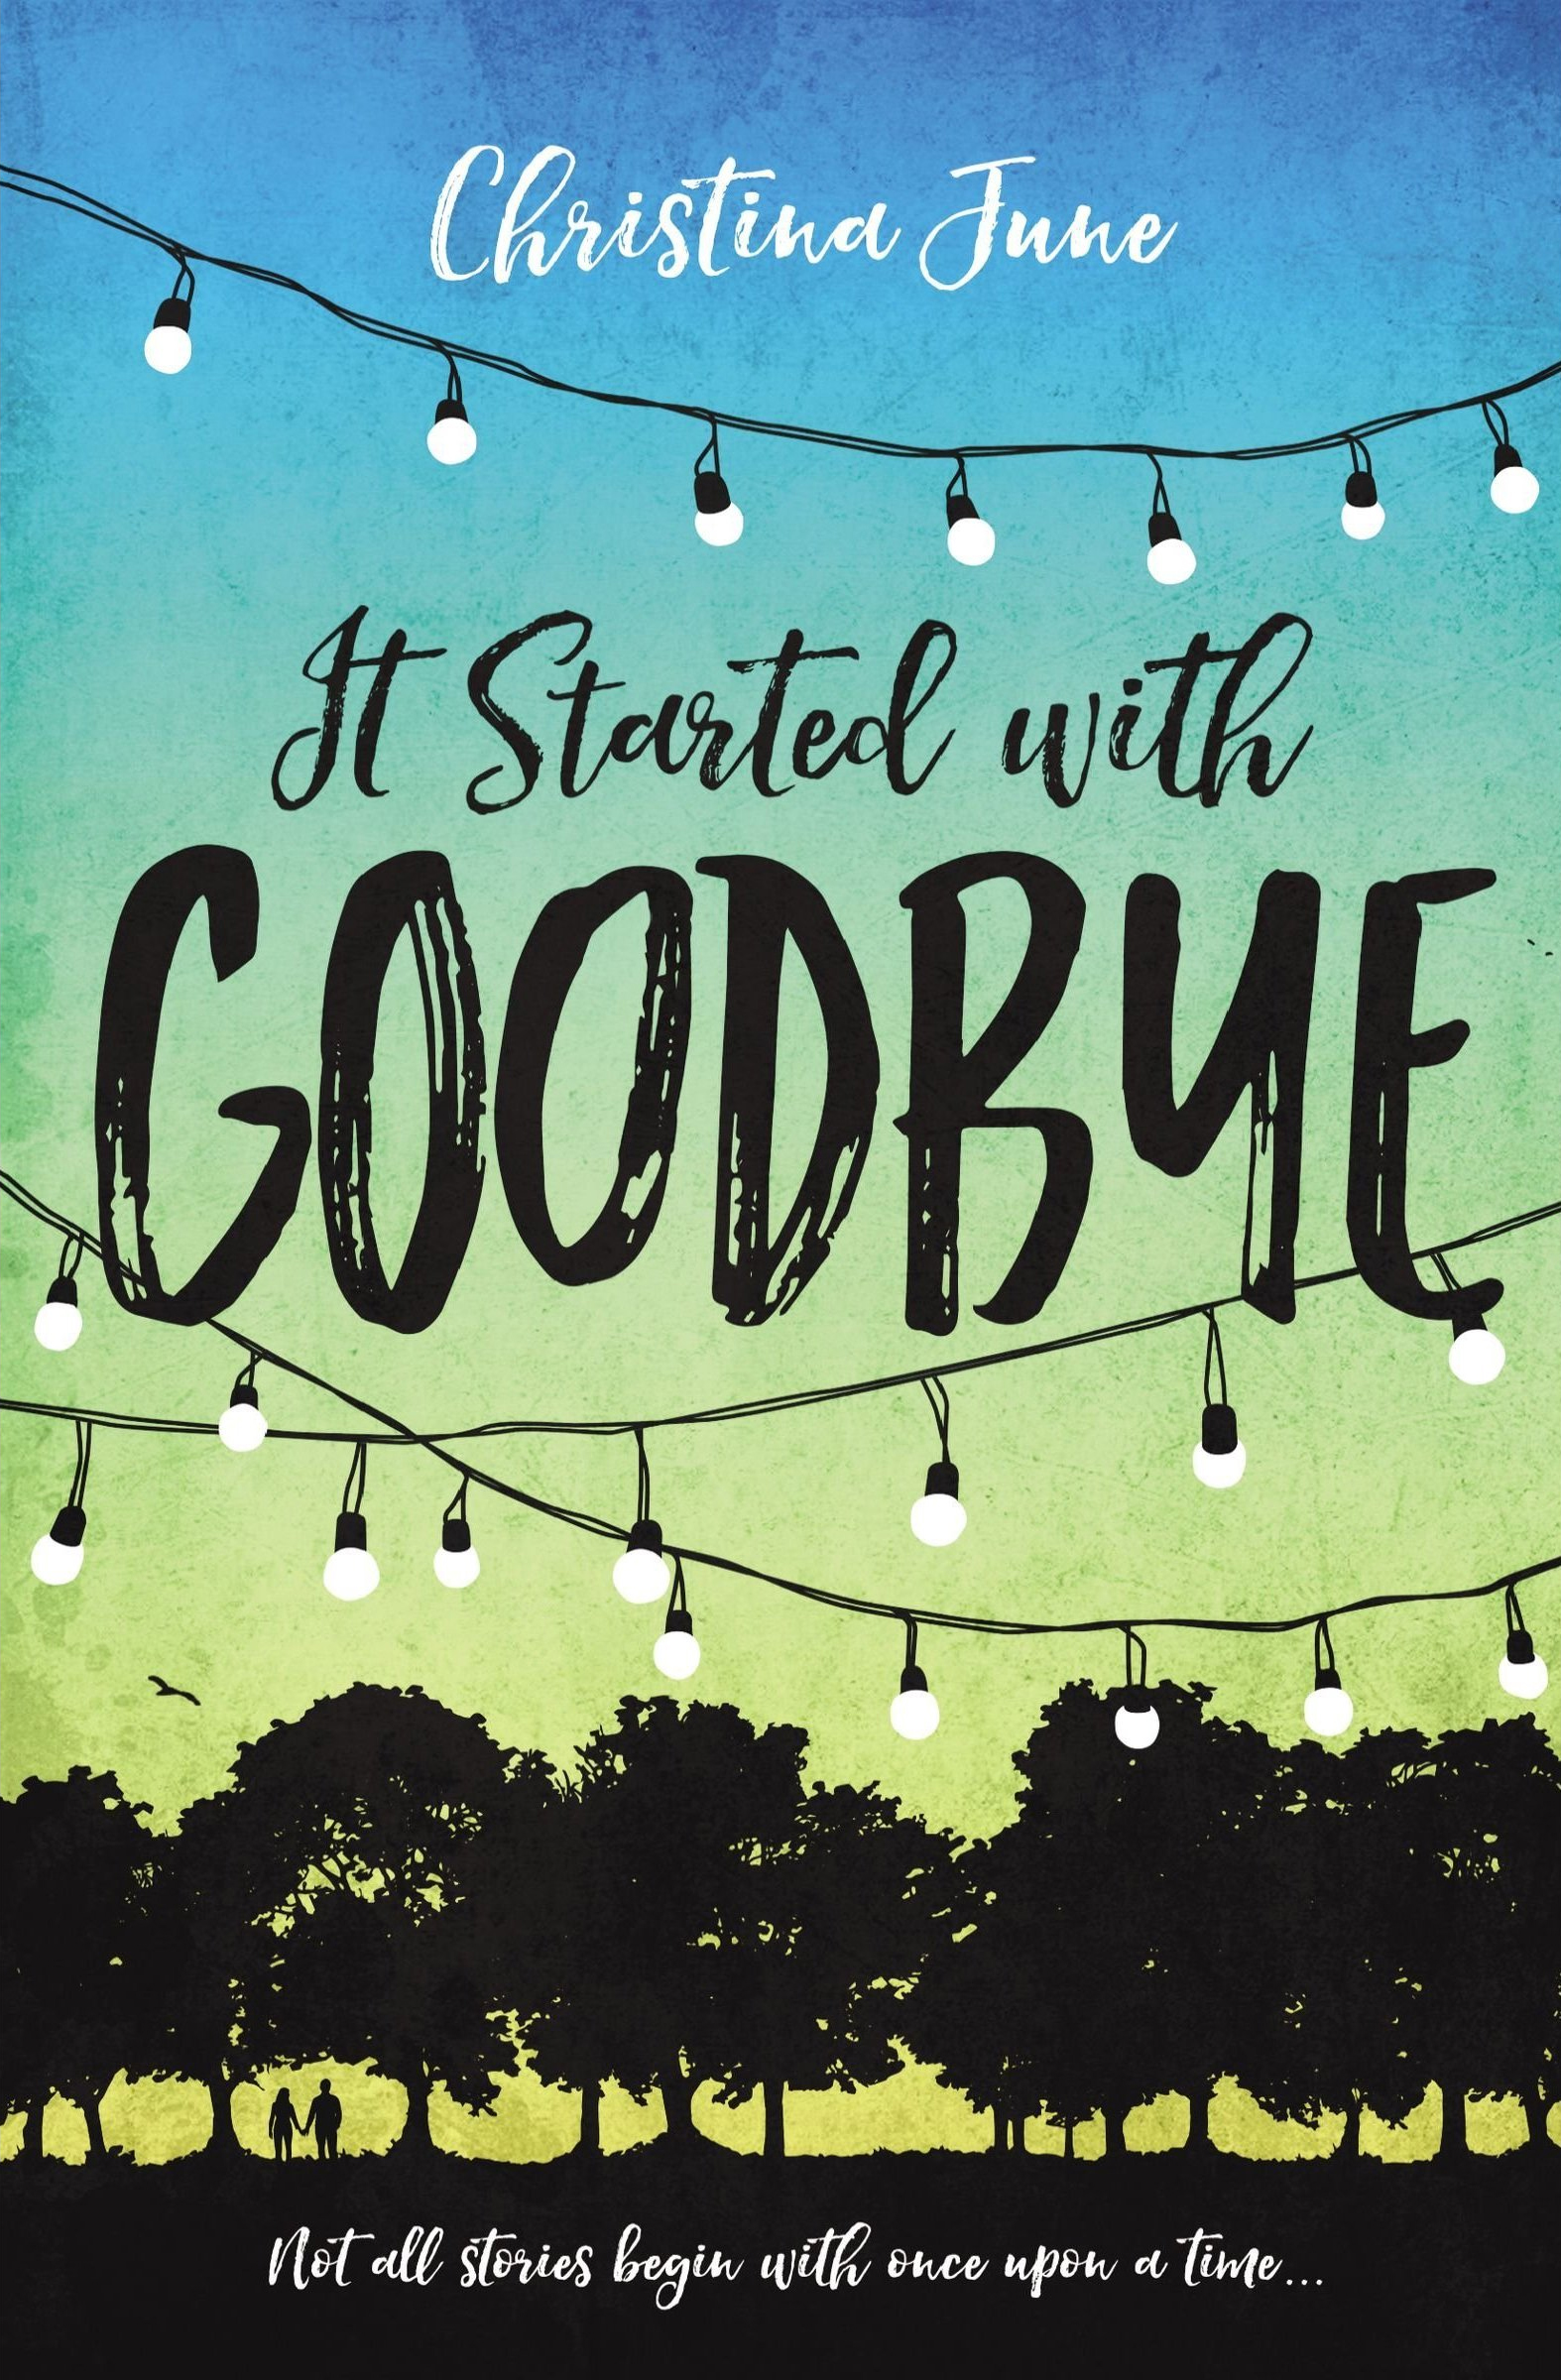 Review It Started With Goodbye By Christina June